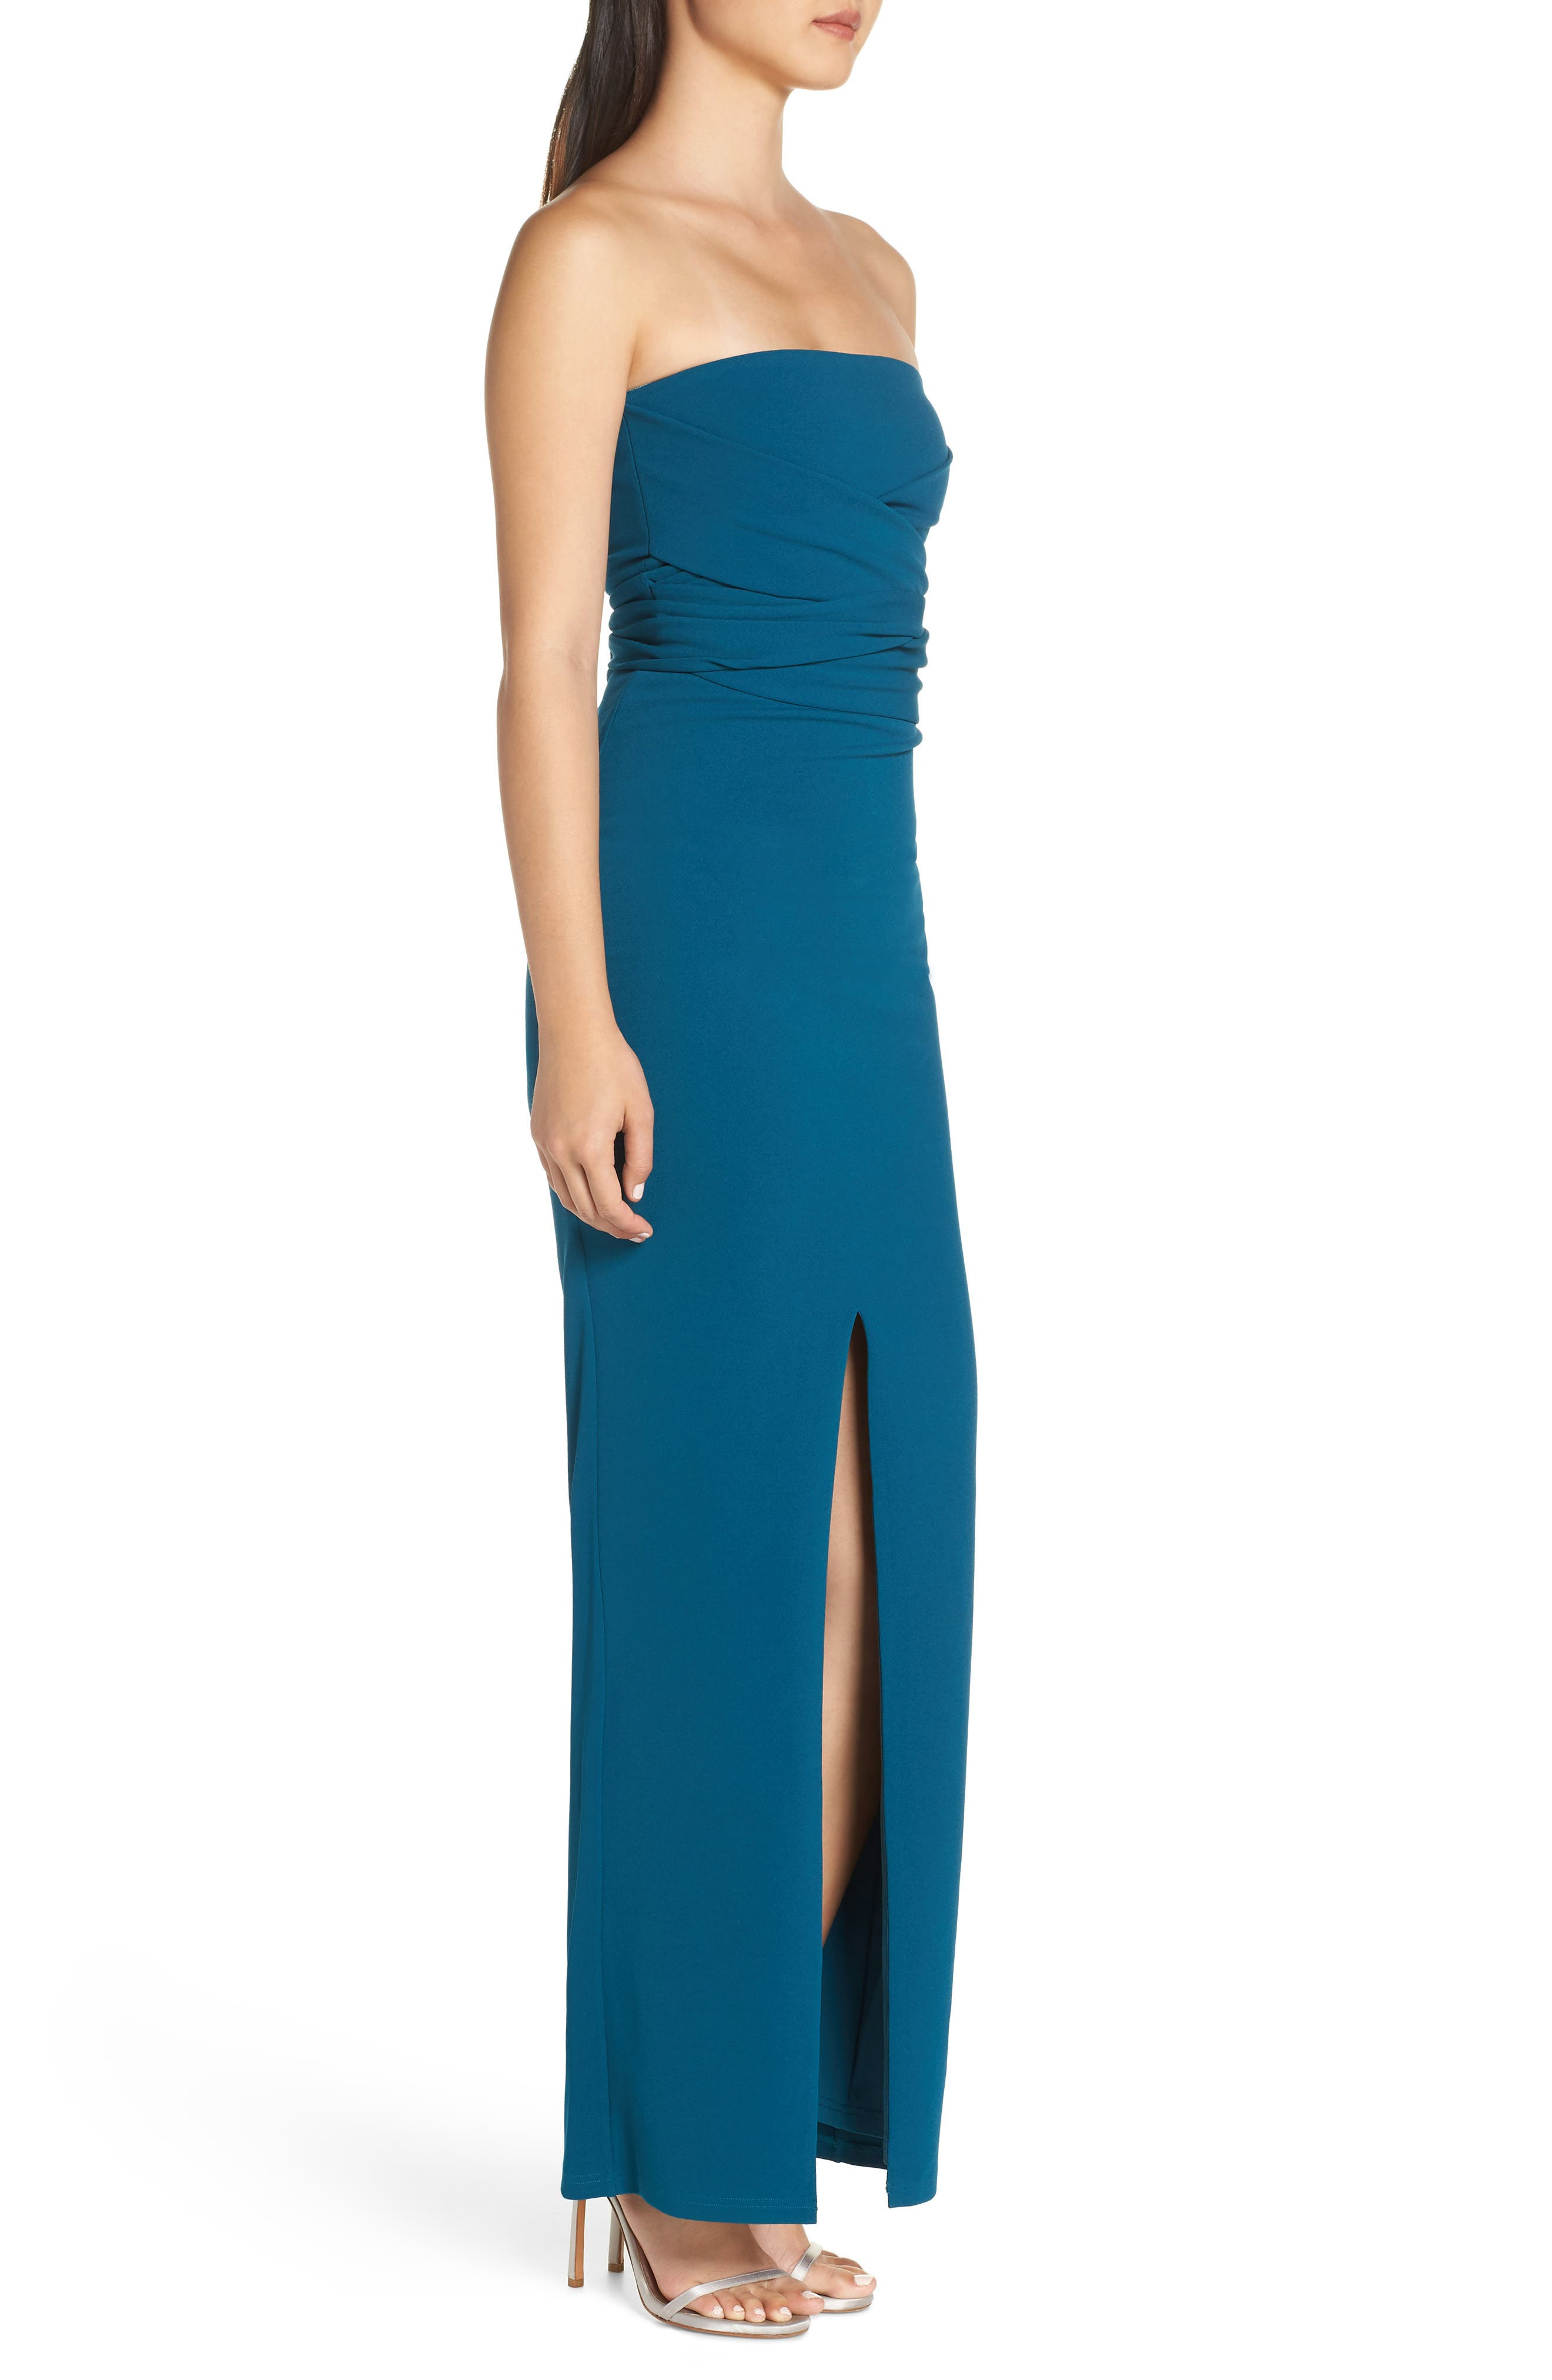 Own the Night Strapless Maxi Dress,                             Alternate thumbnail 3, color,                             TURQUOISE